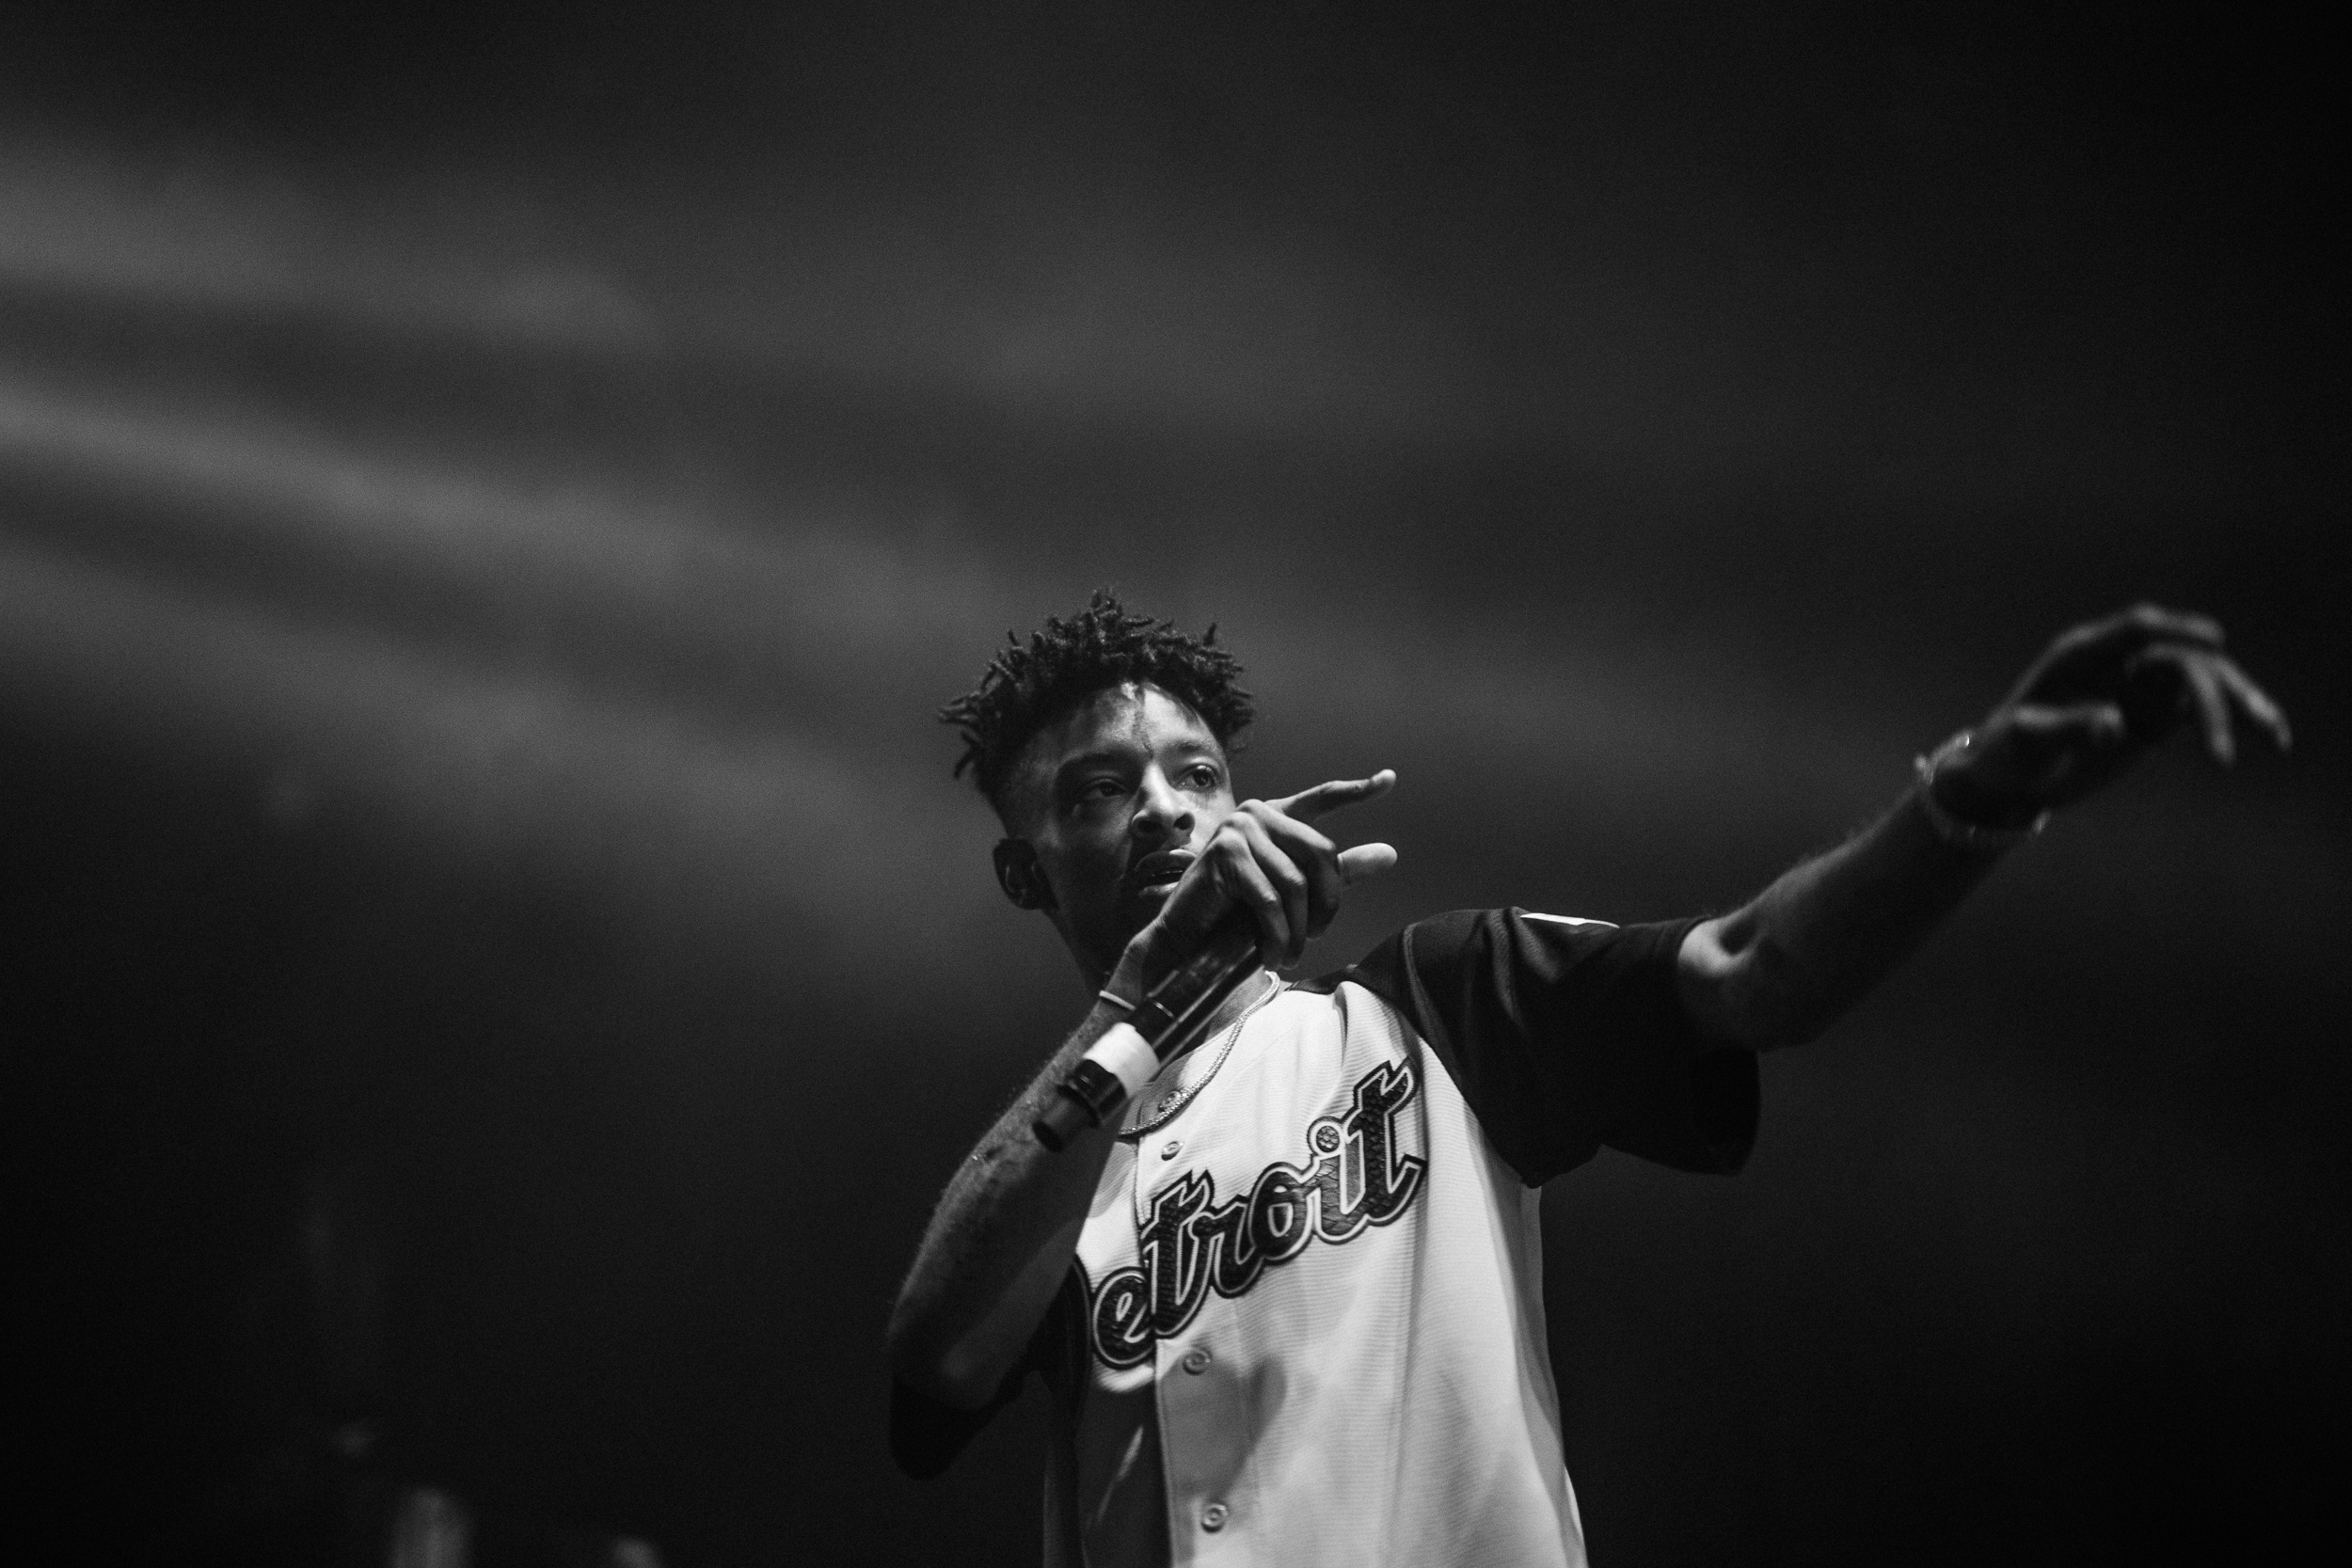 Photographing Rap Concerts - Photo of 21 Savage